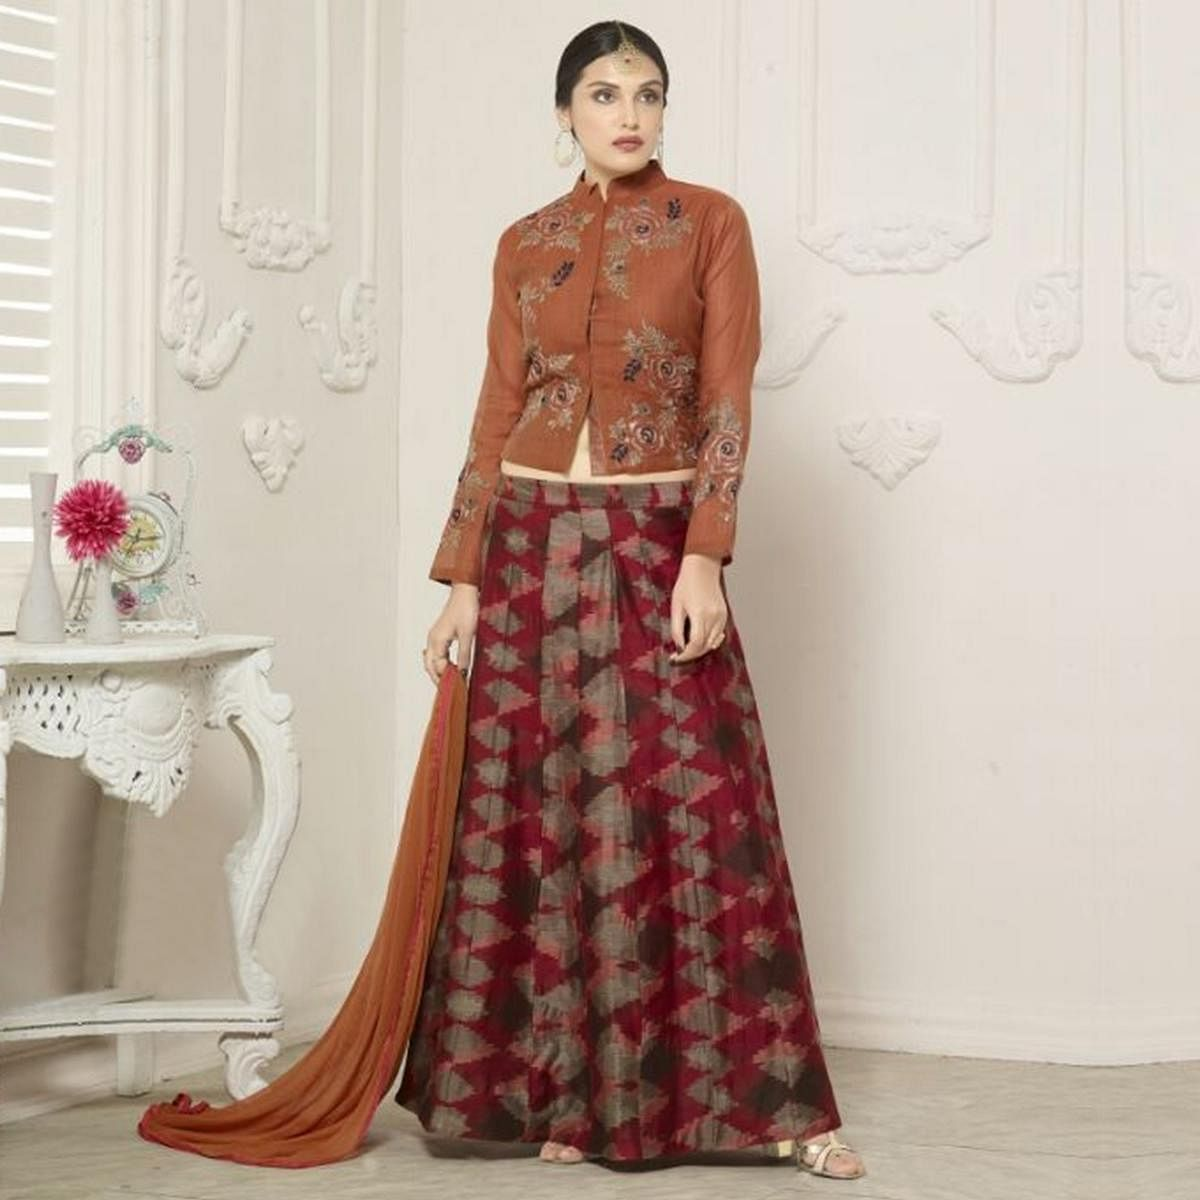 Red Lehenga with Full Sleeves Choli